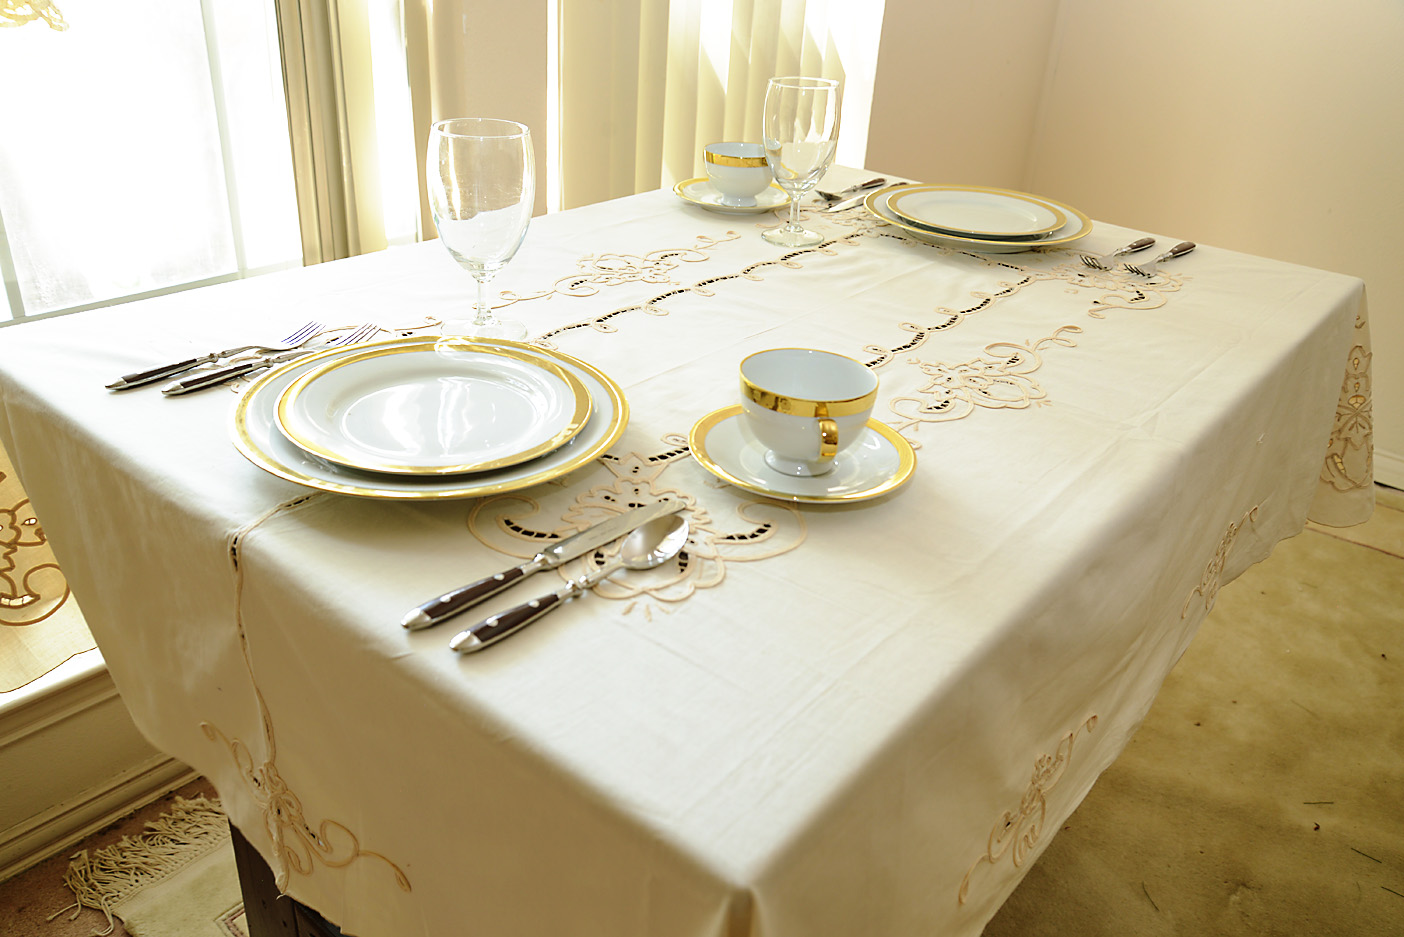 scalloped embroidered tablecloth, kitchen size tablecloth, ecru color